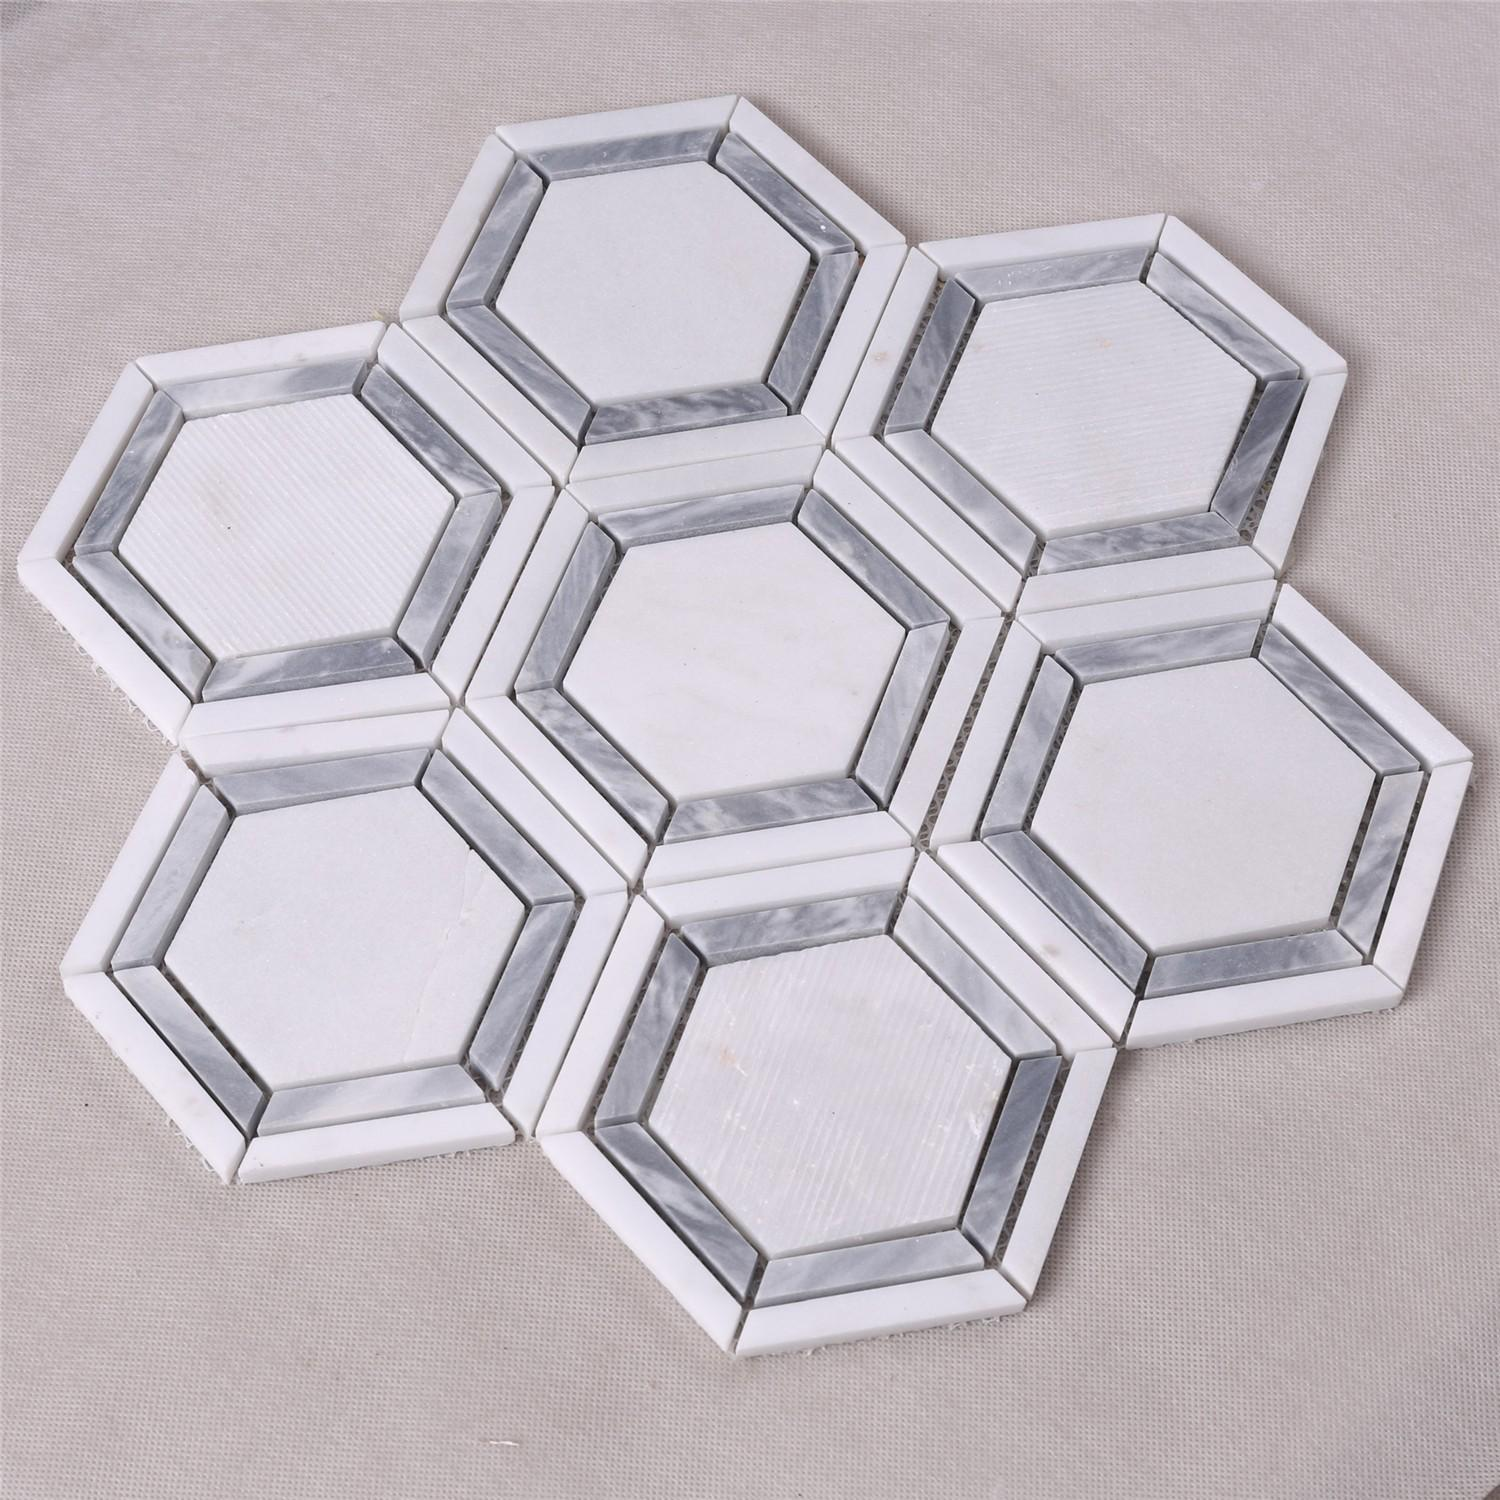 3x3 tile colors flower company for backsplash-2